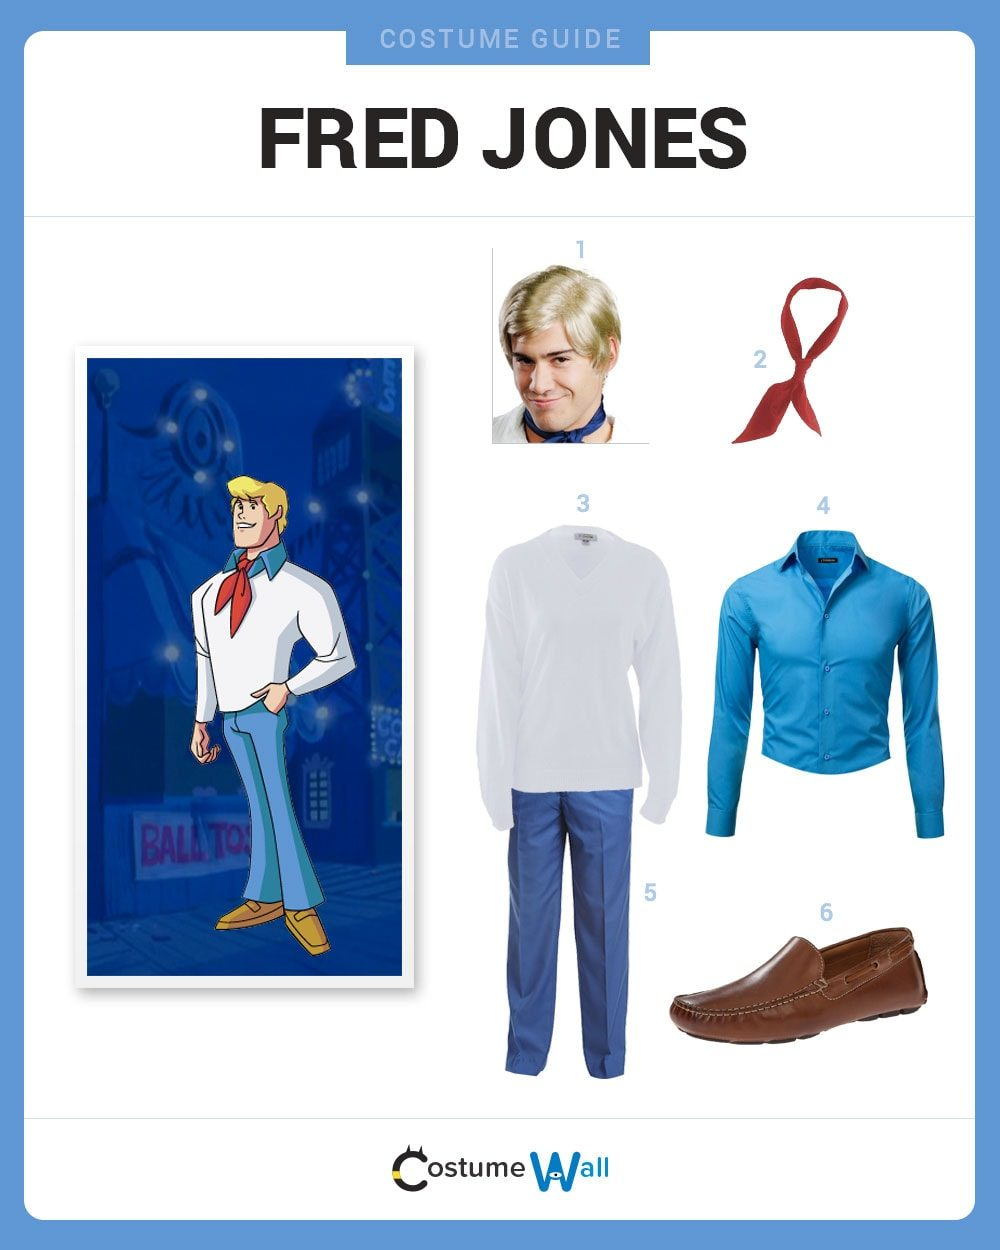 Fred Jones Costume Guide